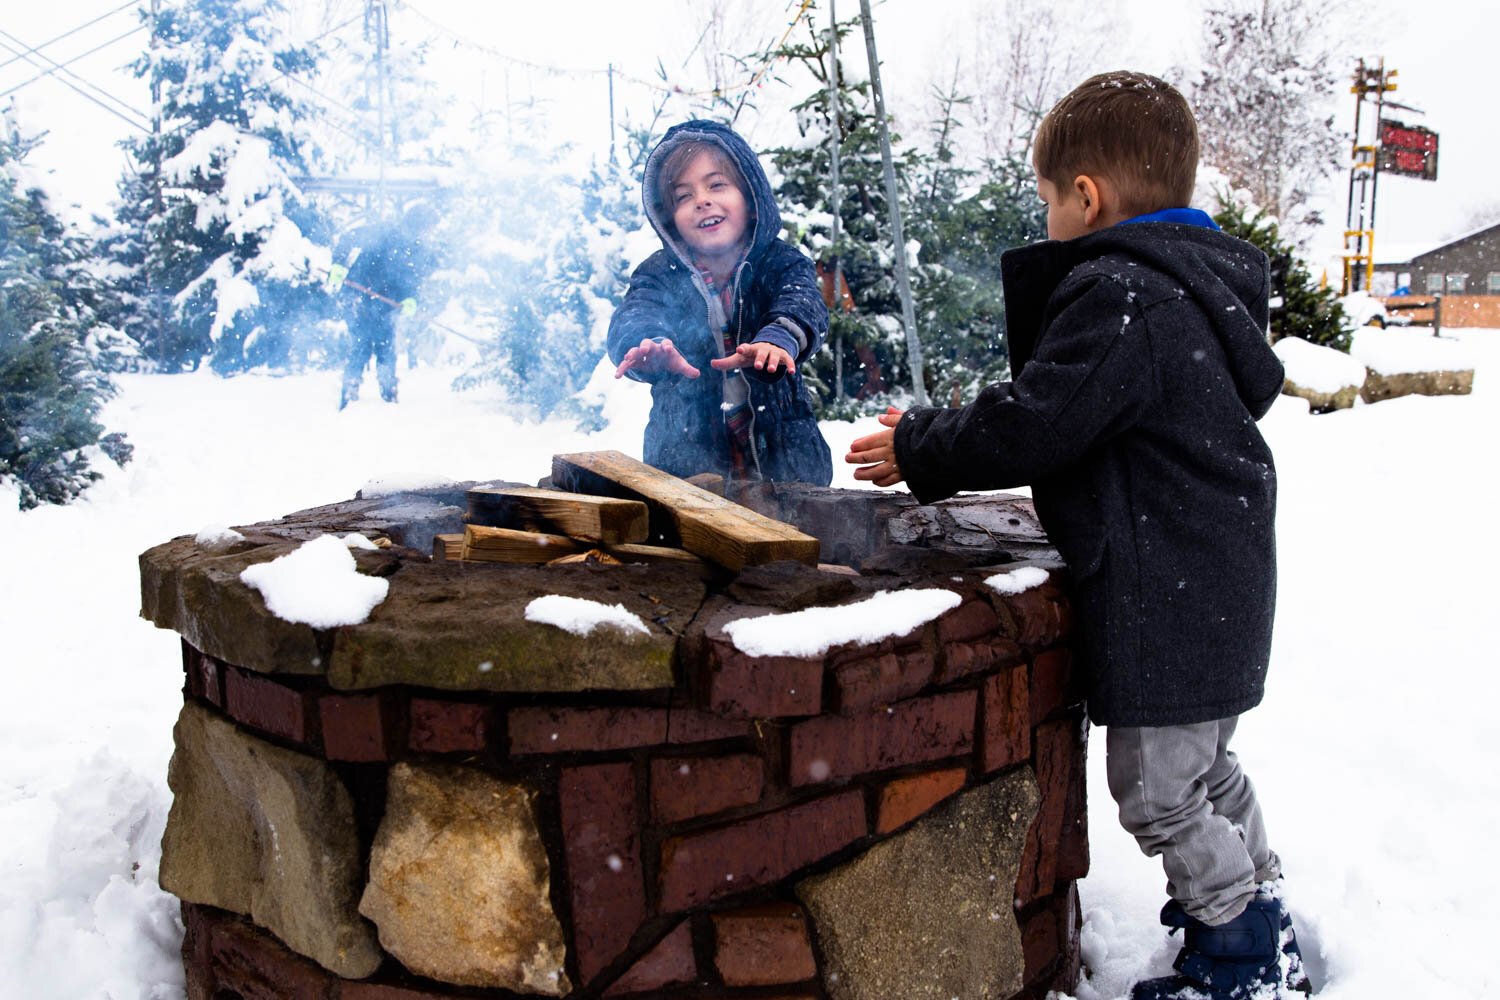 Two kids sitting by the fire pit at the Christmas Tree lot in Boise ID warming their hands.